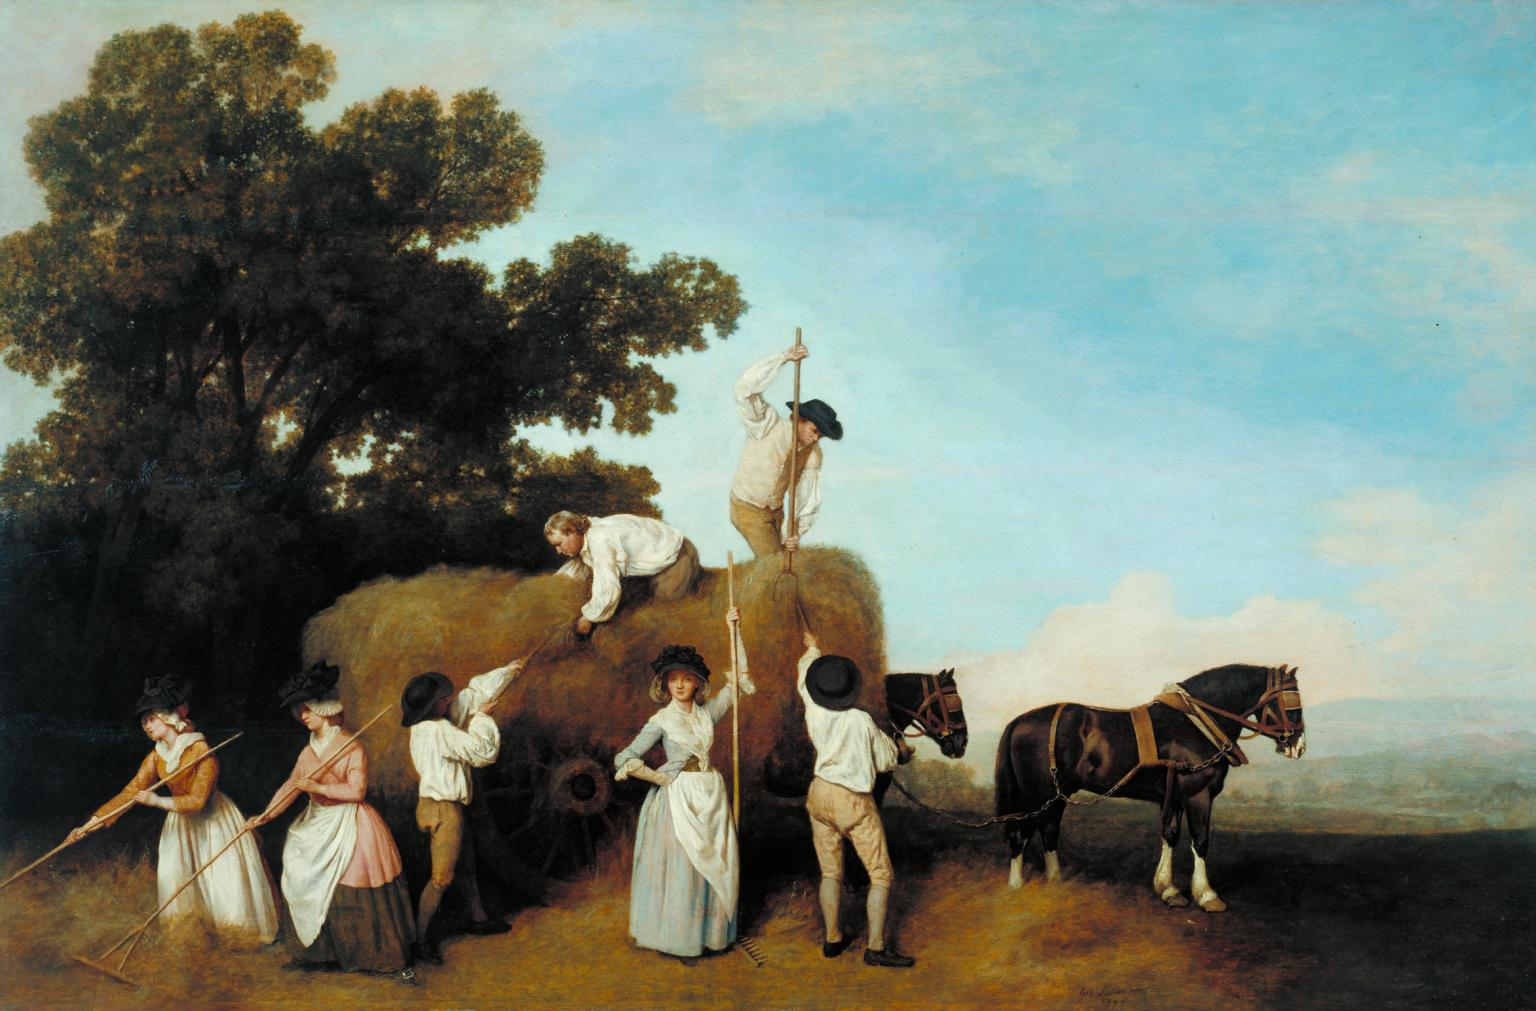 Haymakers 1785 by George Stubbs